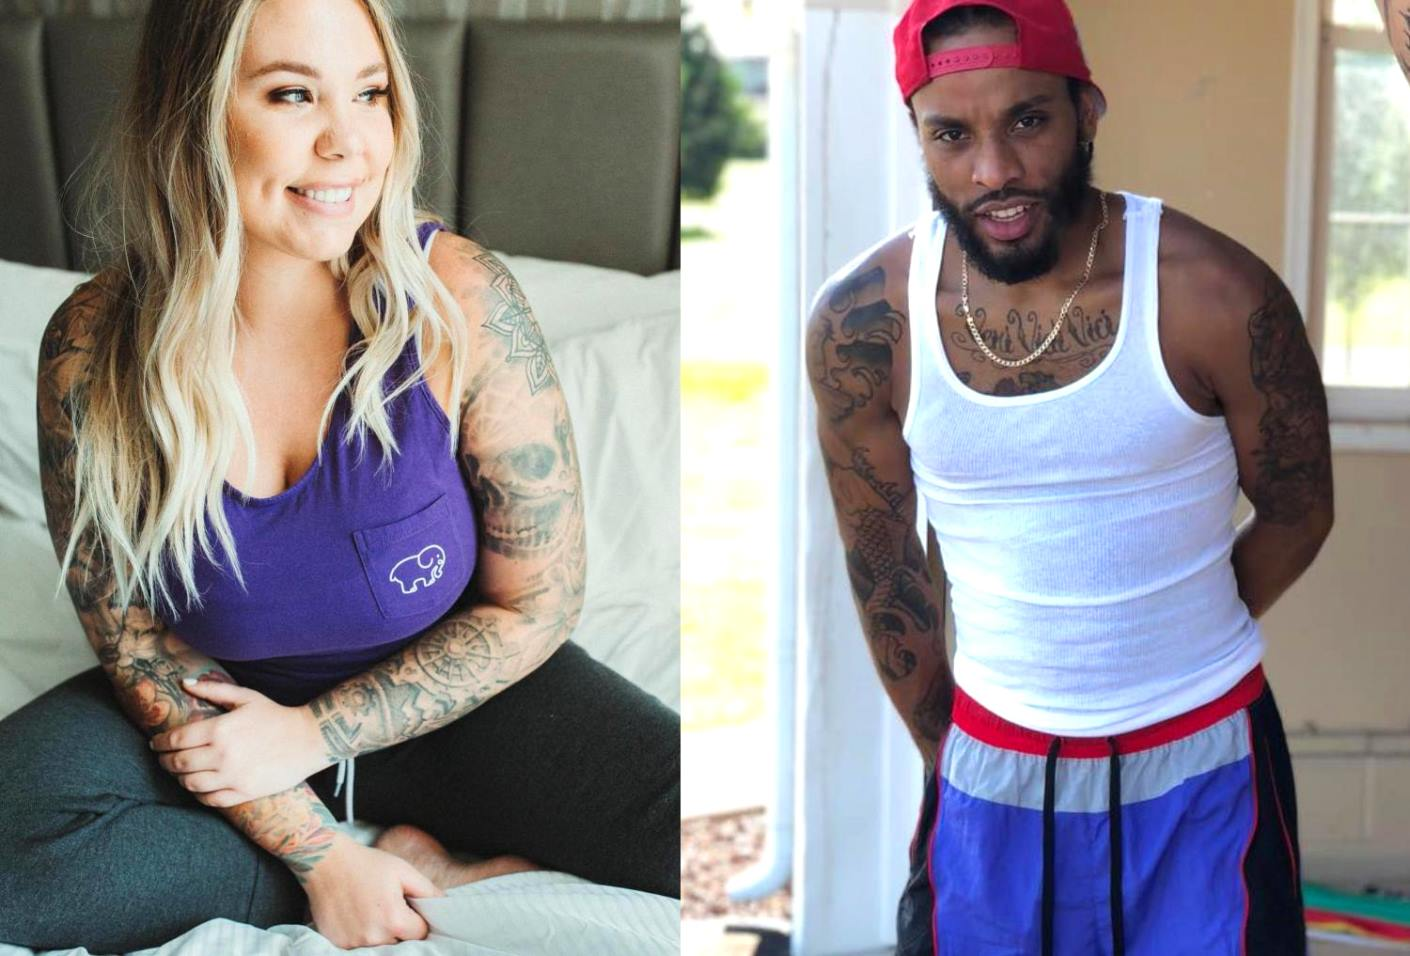 Teen Mom 2's Kailyn Lowry talks Chris Lopez's Violent Behavior